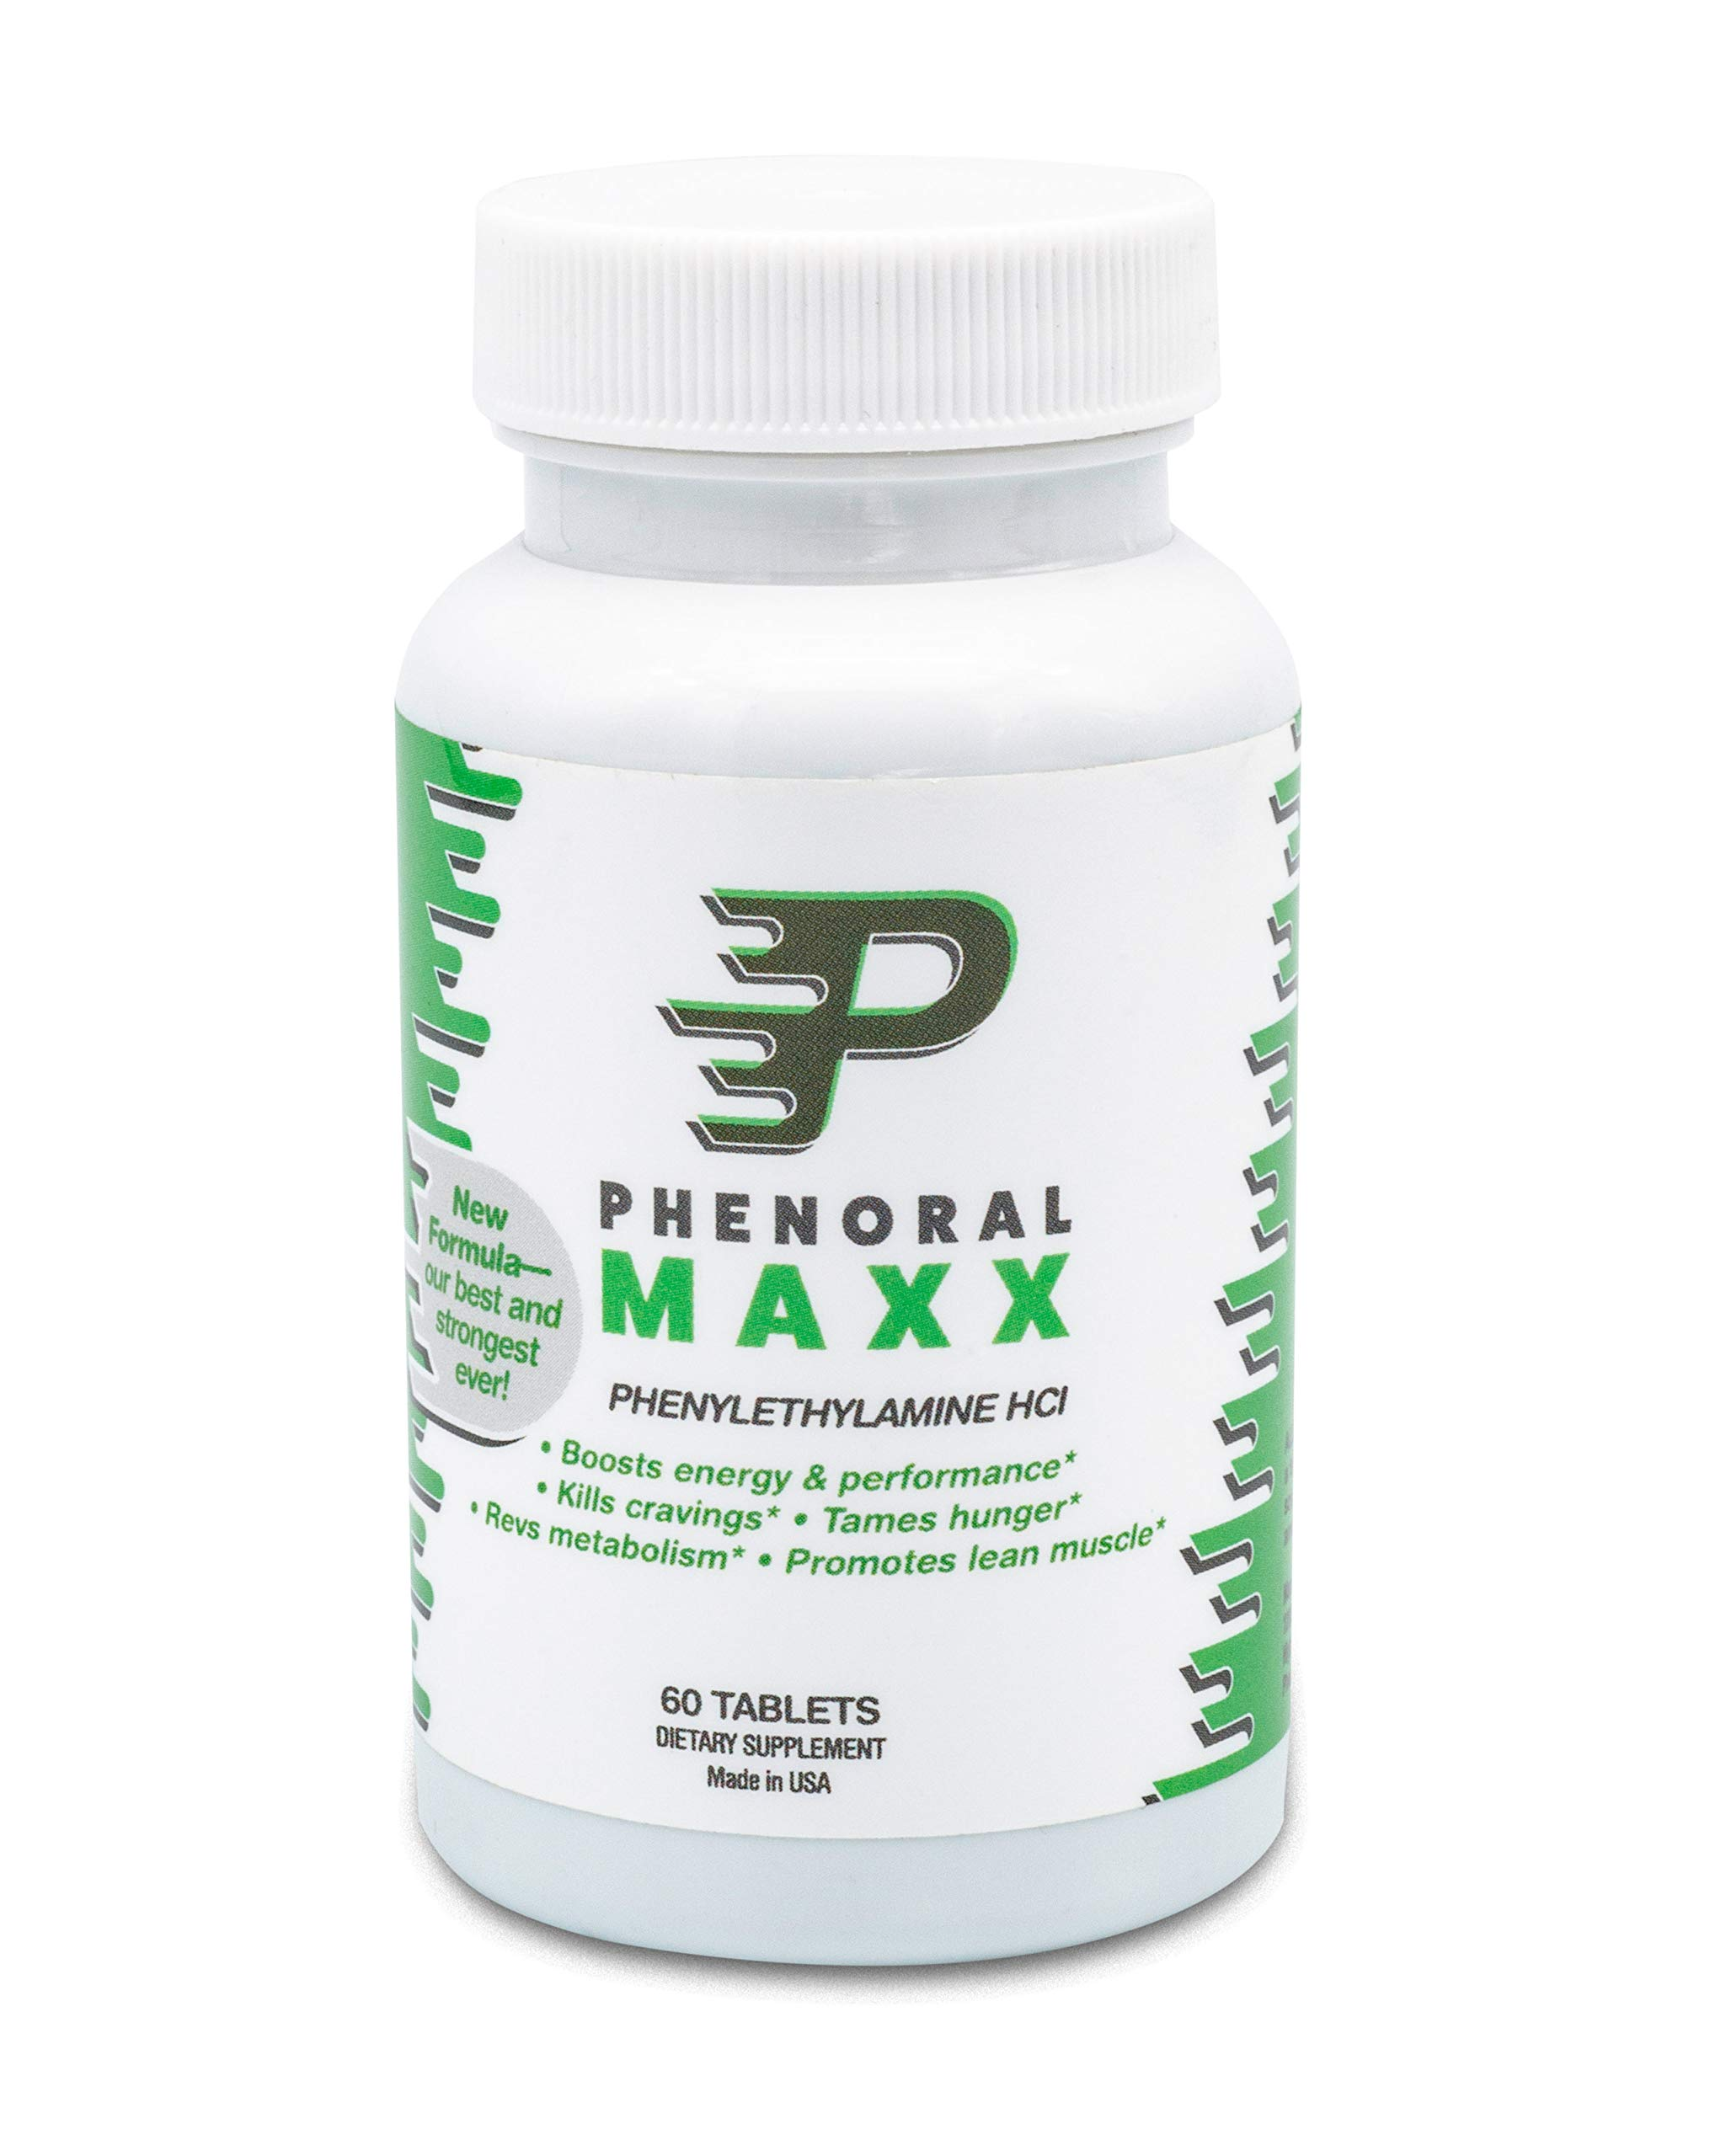 Phenoral Maxx Maximum Strength Weight Loss Diet Pill - Phenylethylamine - Appetite Suppressant and Energy - Boost Your Metabolism While Eating Less by Phenoral